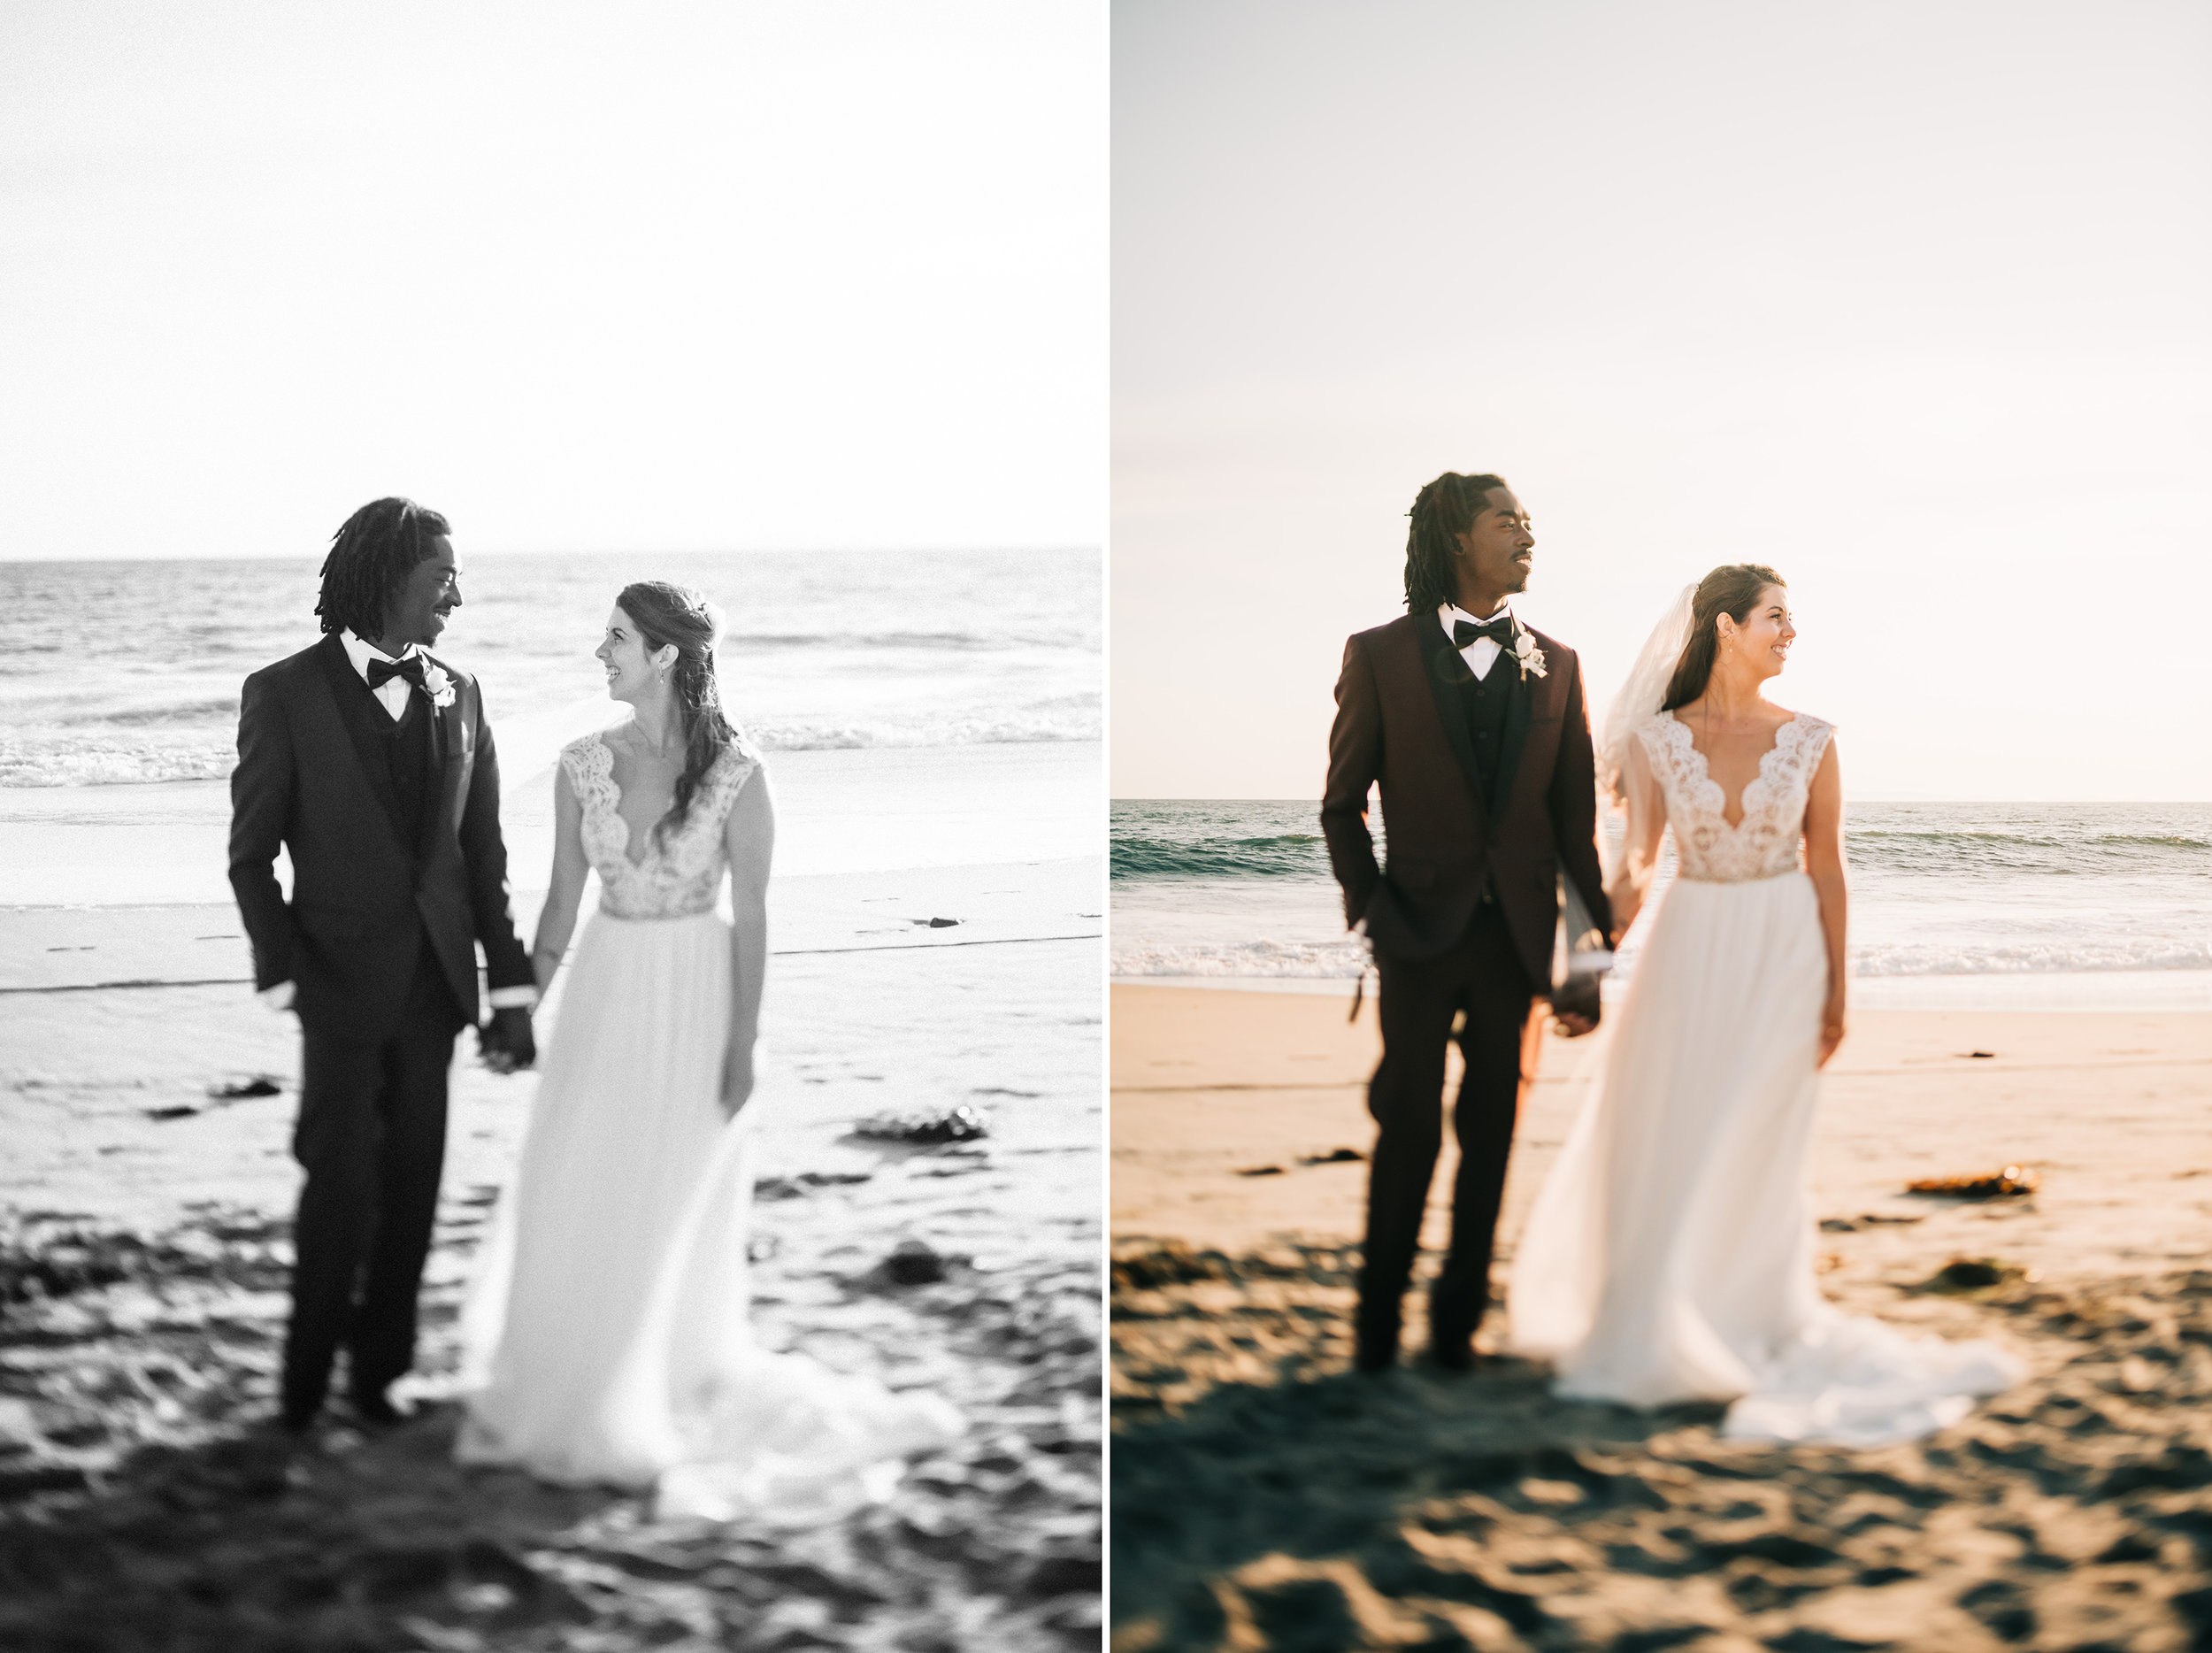 southern california laguna beach salt creek beach los angeles socal boho bay area akland san francisco engagement wedding nontraditional fun creative eclectic photographer magic-880.jpg